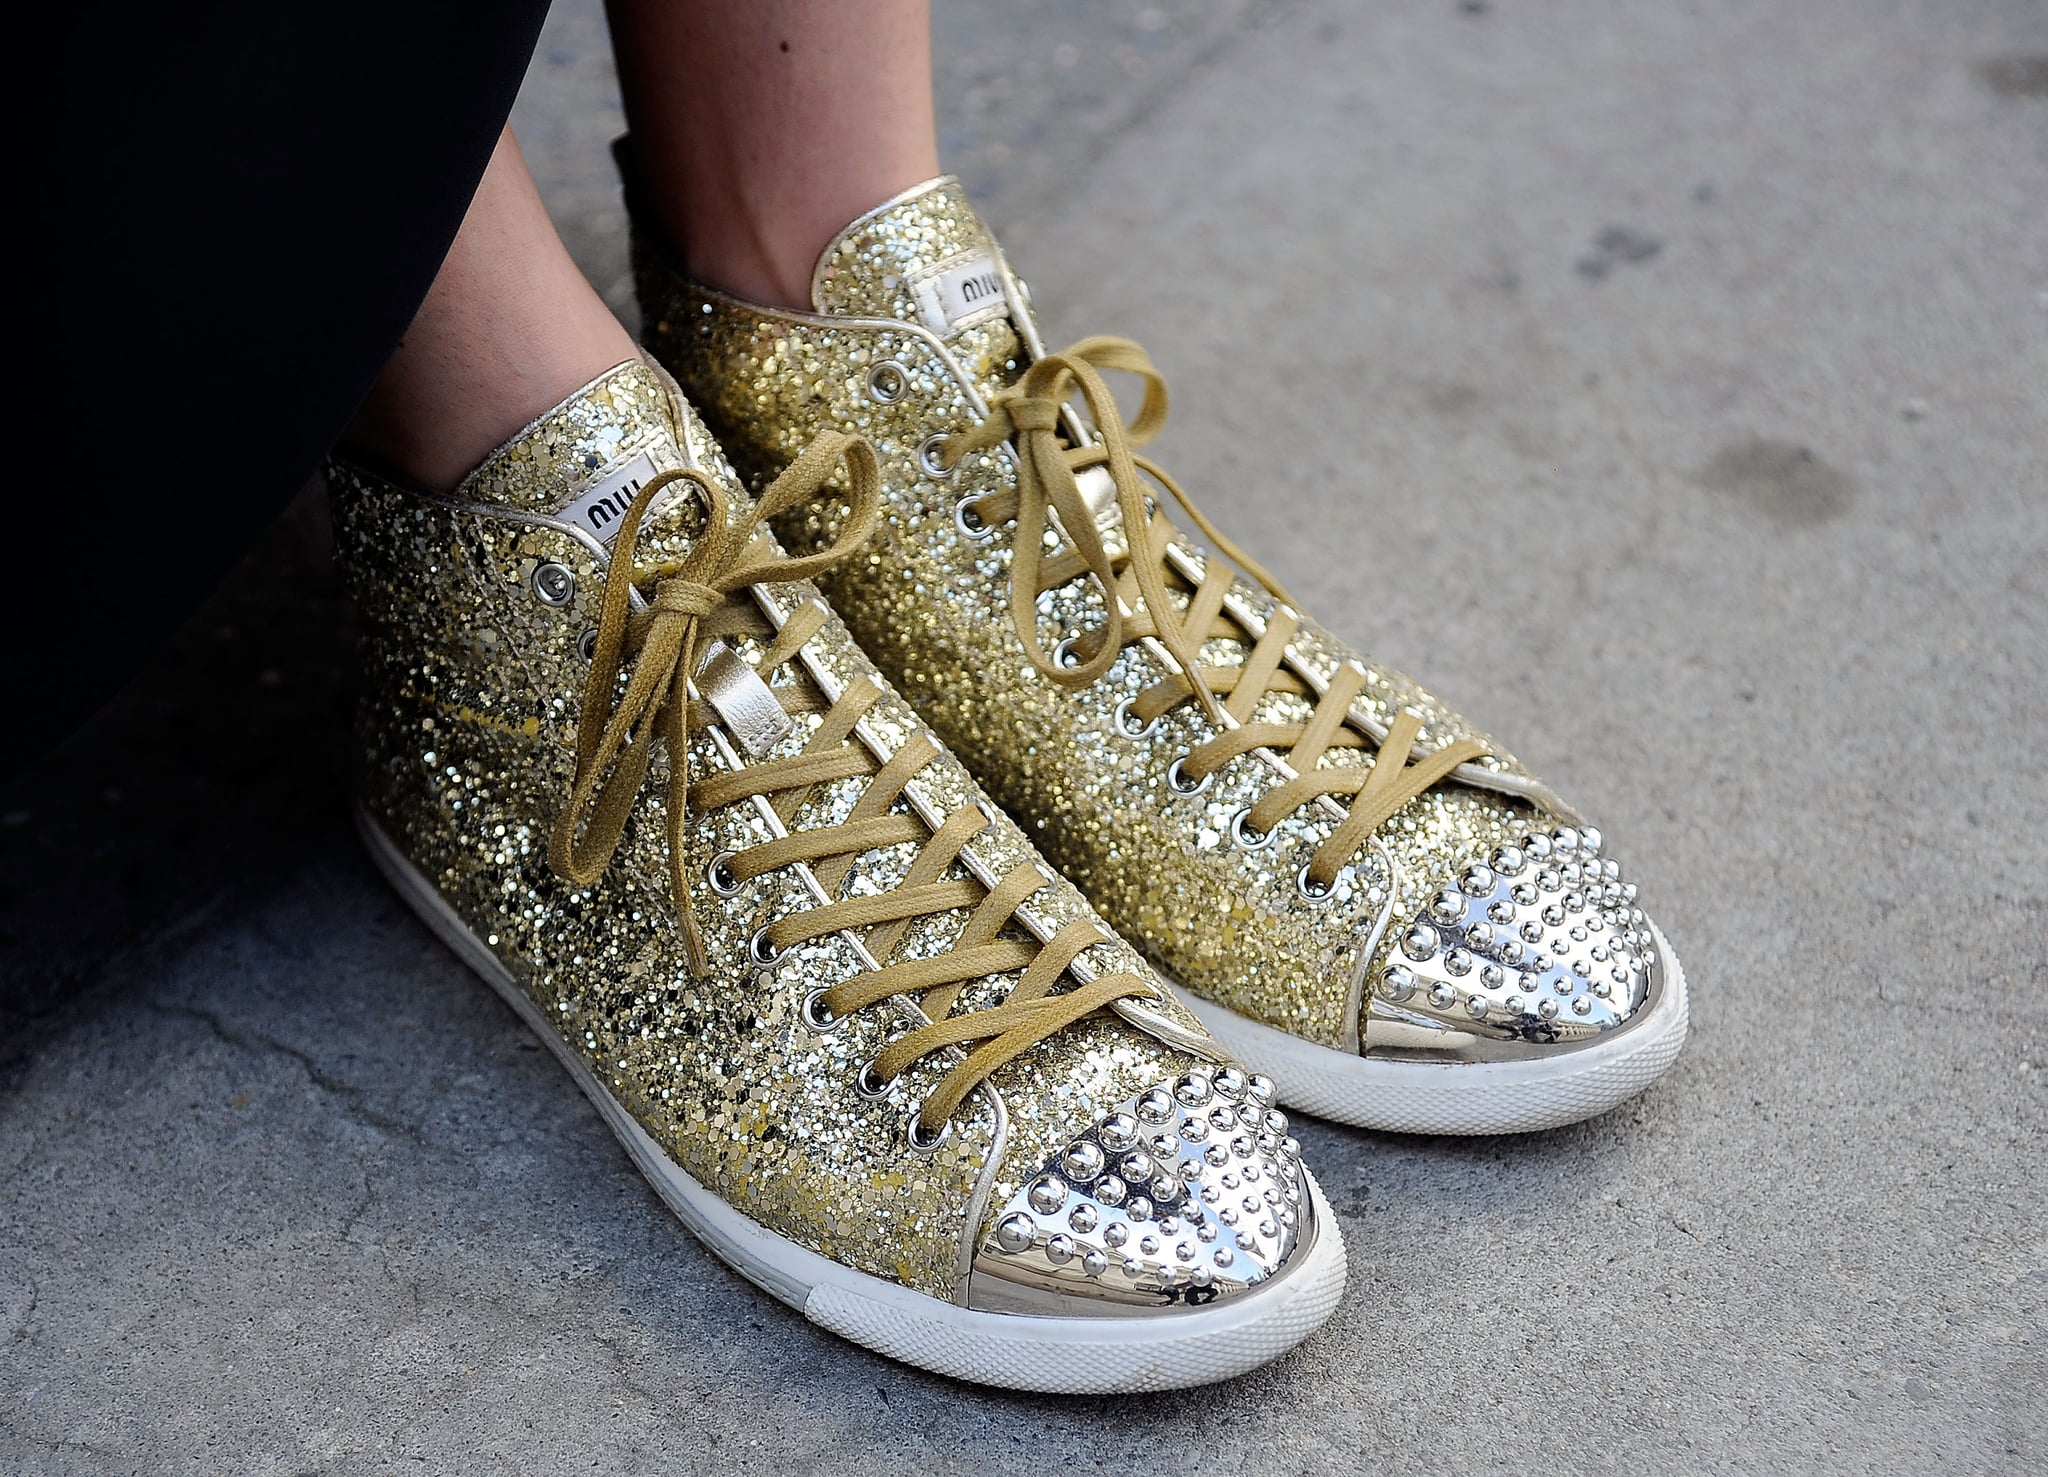 Happy feet, thanks to a pair of studded and sparkly Miu Miu kicks.